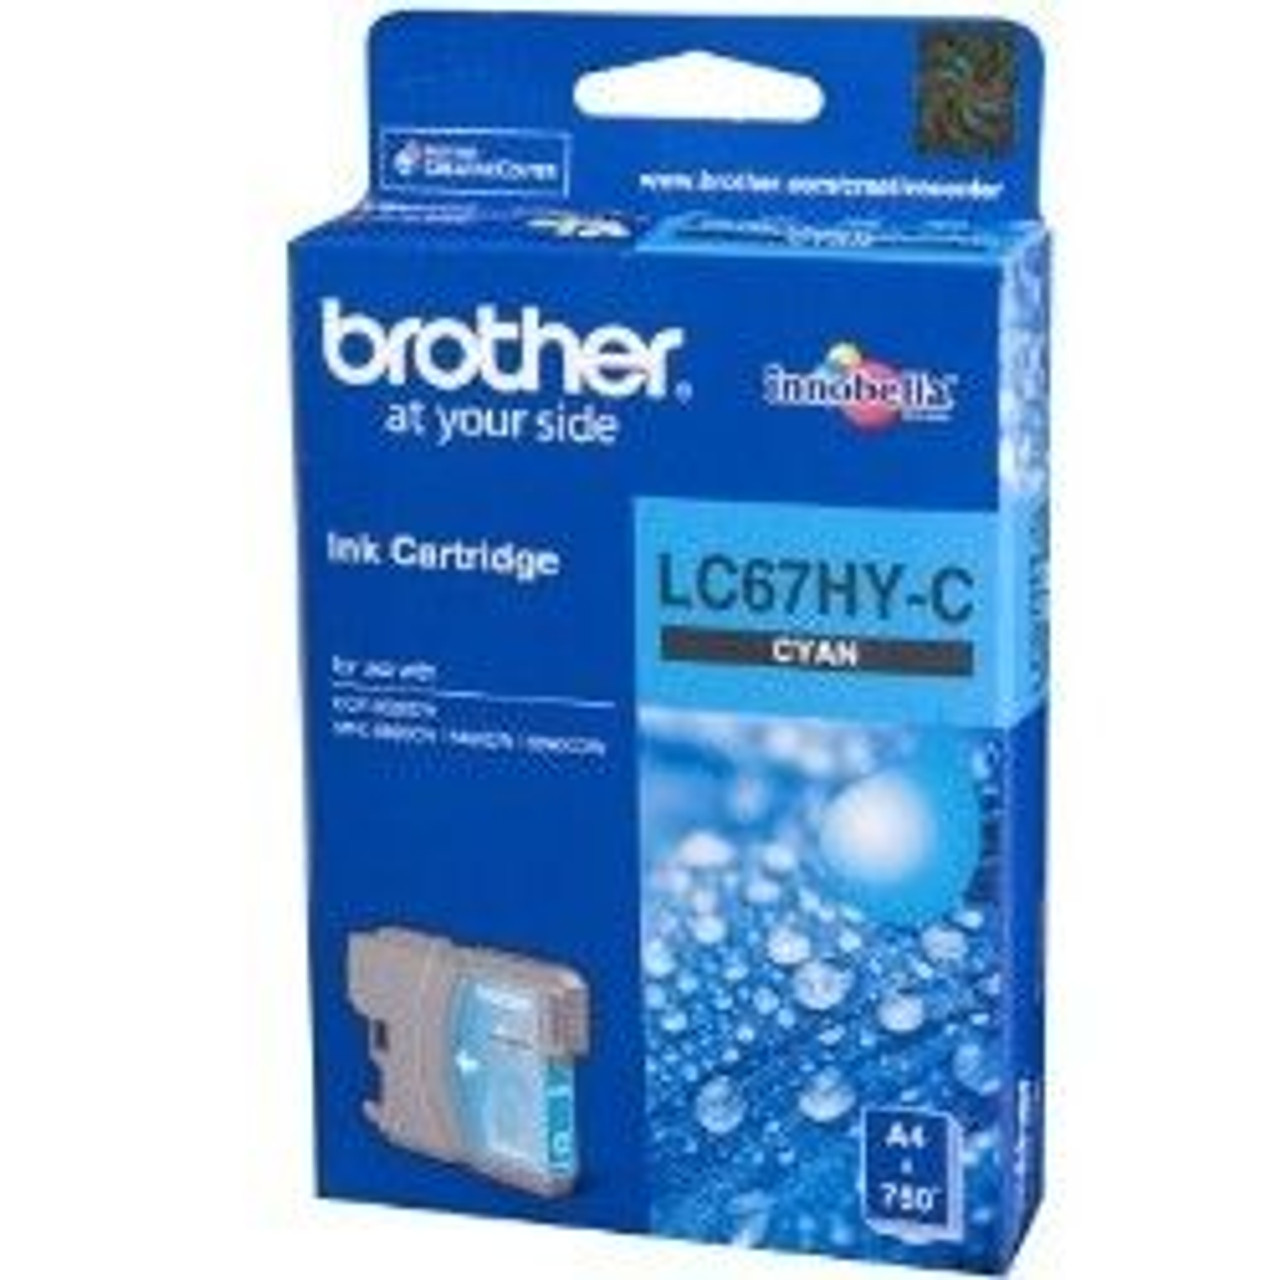 Image for Brother LC67HY-C High Yield Cyan Ink Cartridge CX Computer Superstore